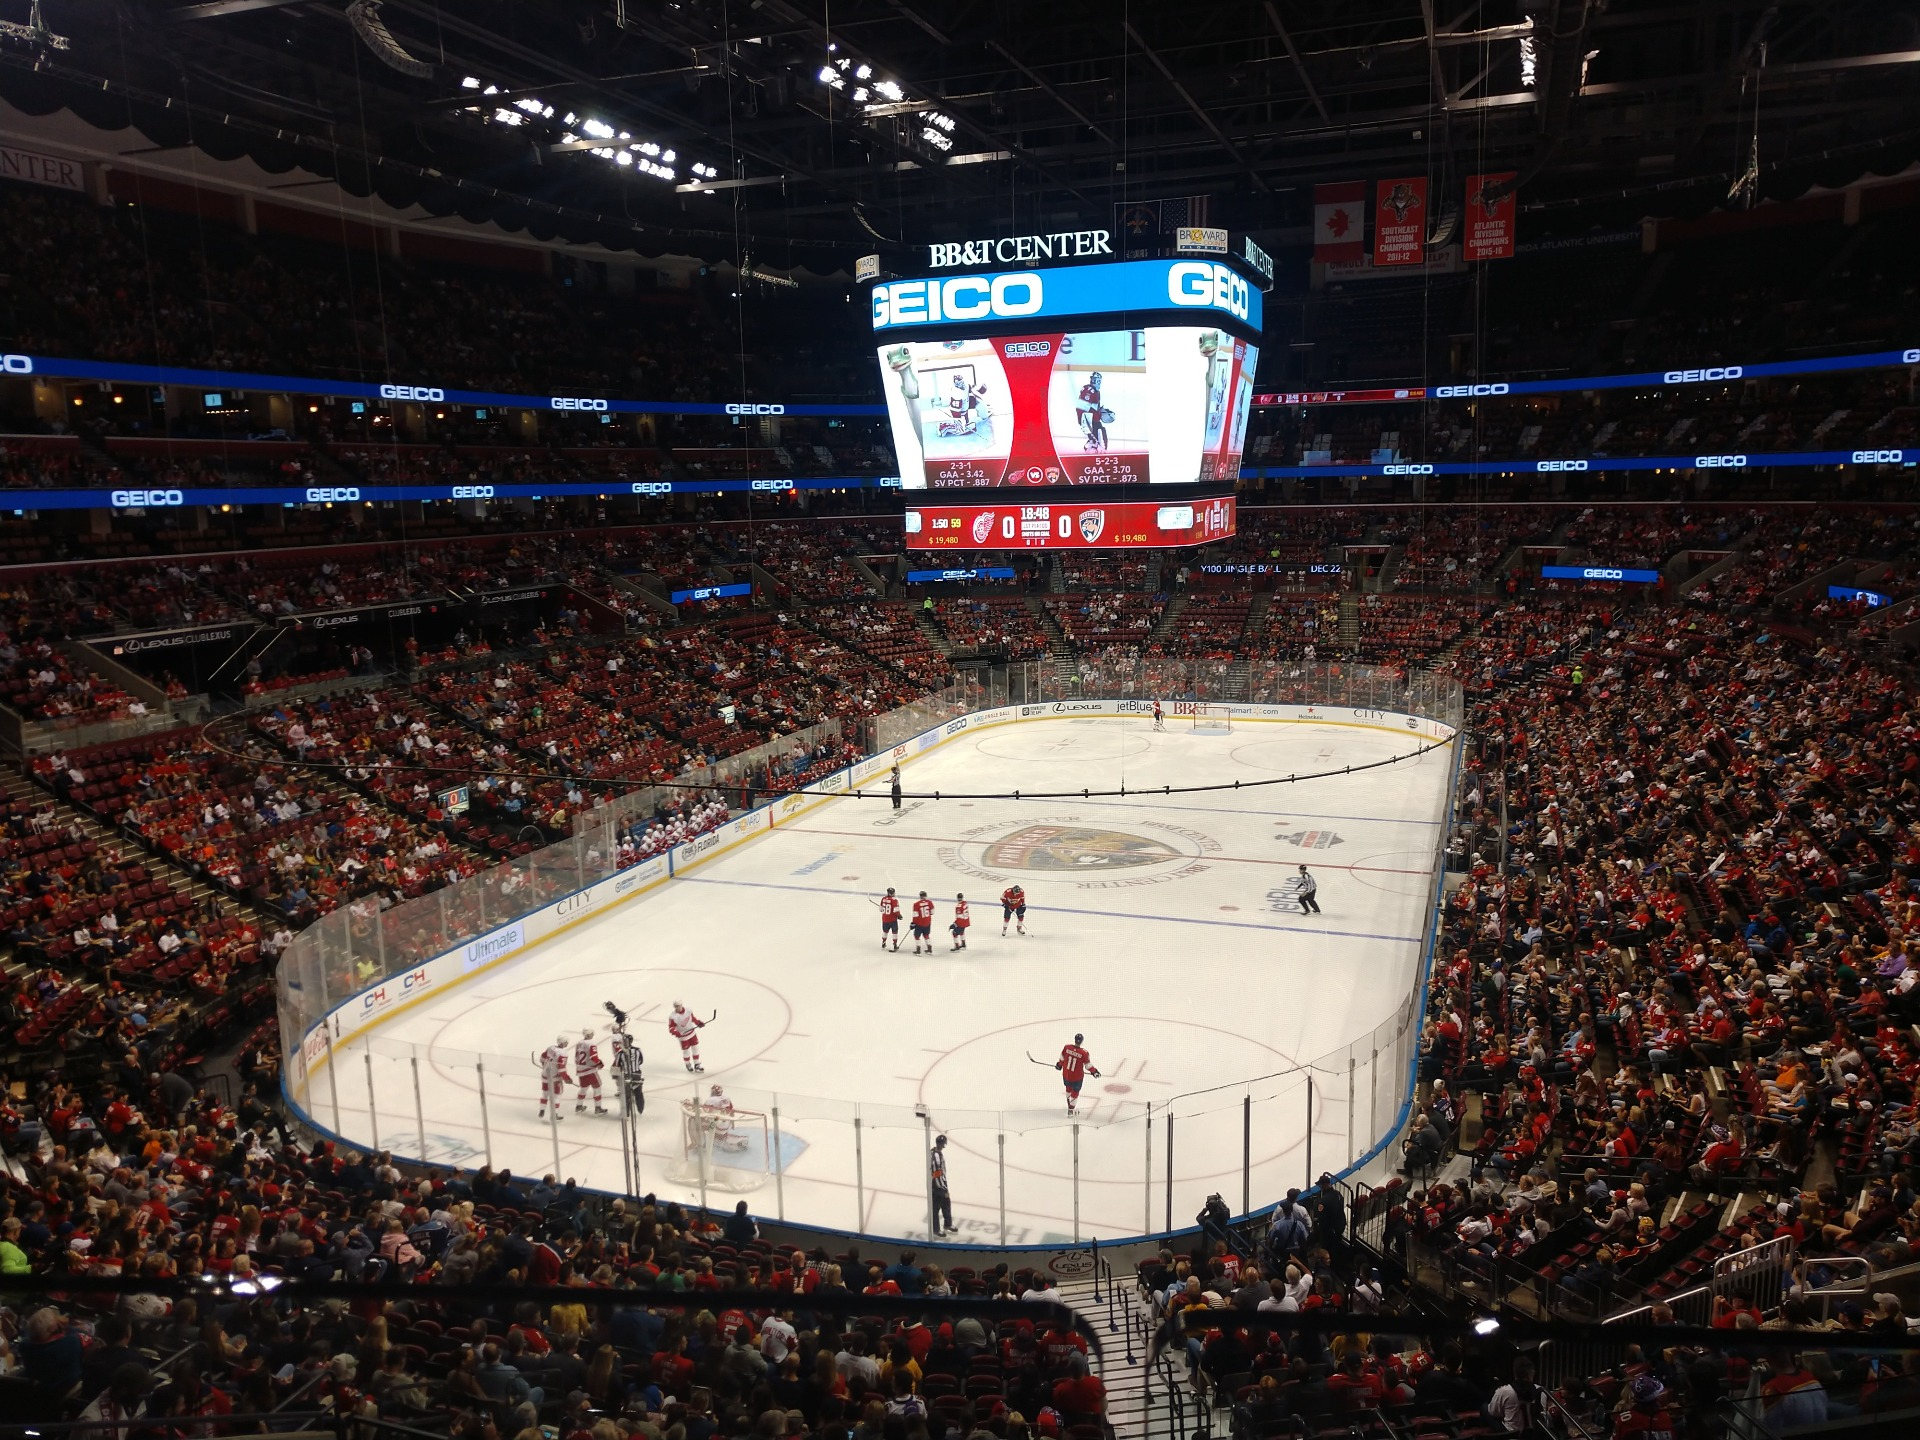 BB&T Center Section CL25 Row 1 Seat 11